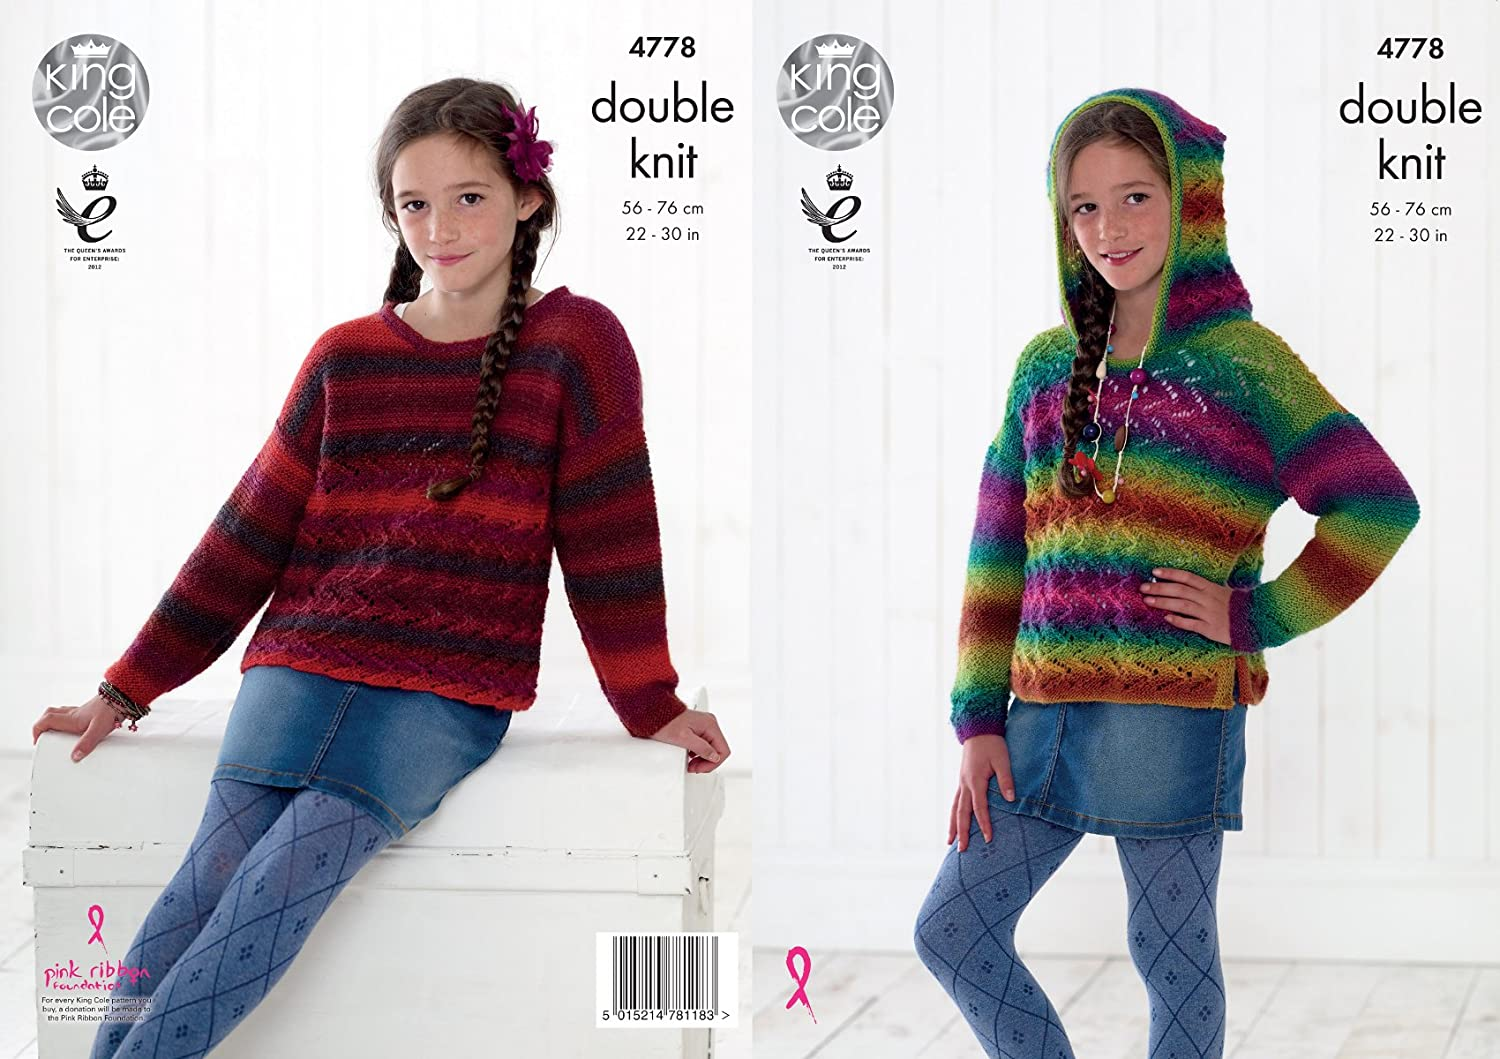 King Cole Girls Double Knitting Pattern Childrens Lacy Hoodie & Sweater Riot DK (4778)